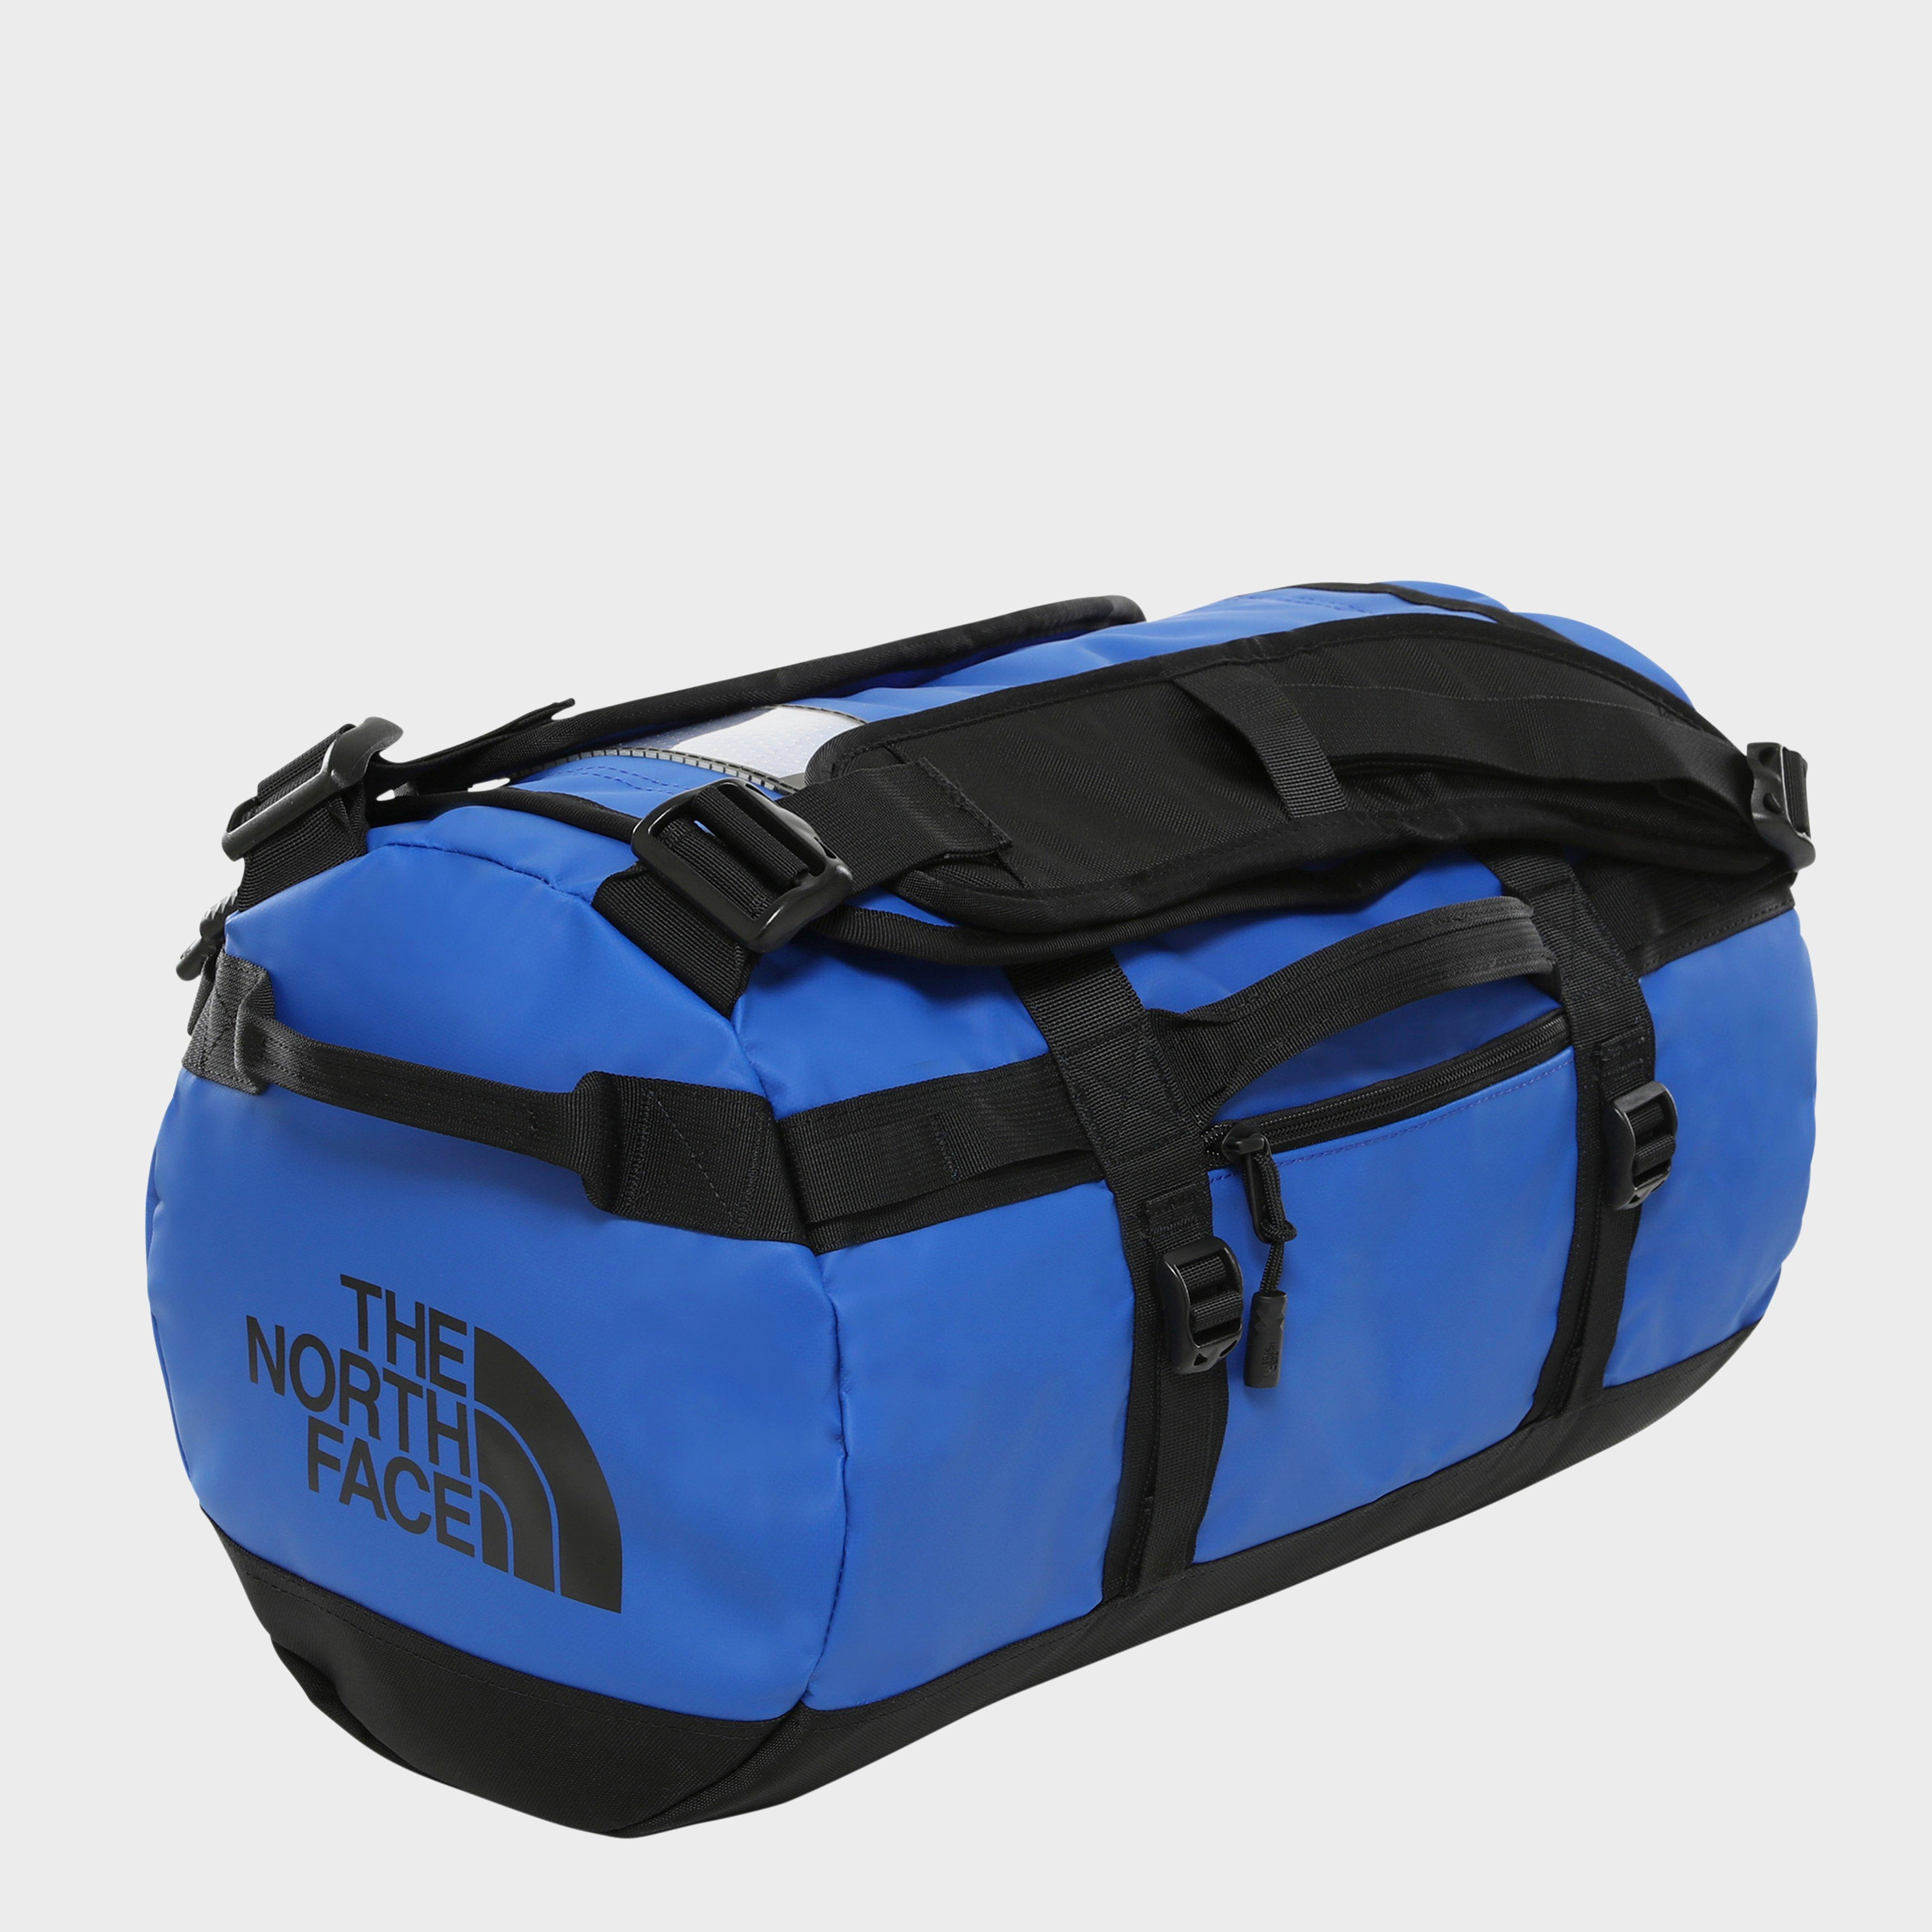 The North Face Base Camp Duffel Bag (Extra Small), Blue